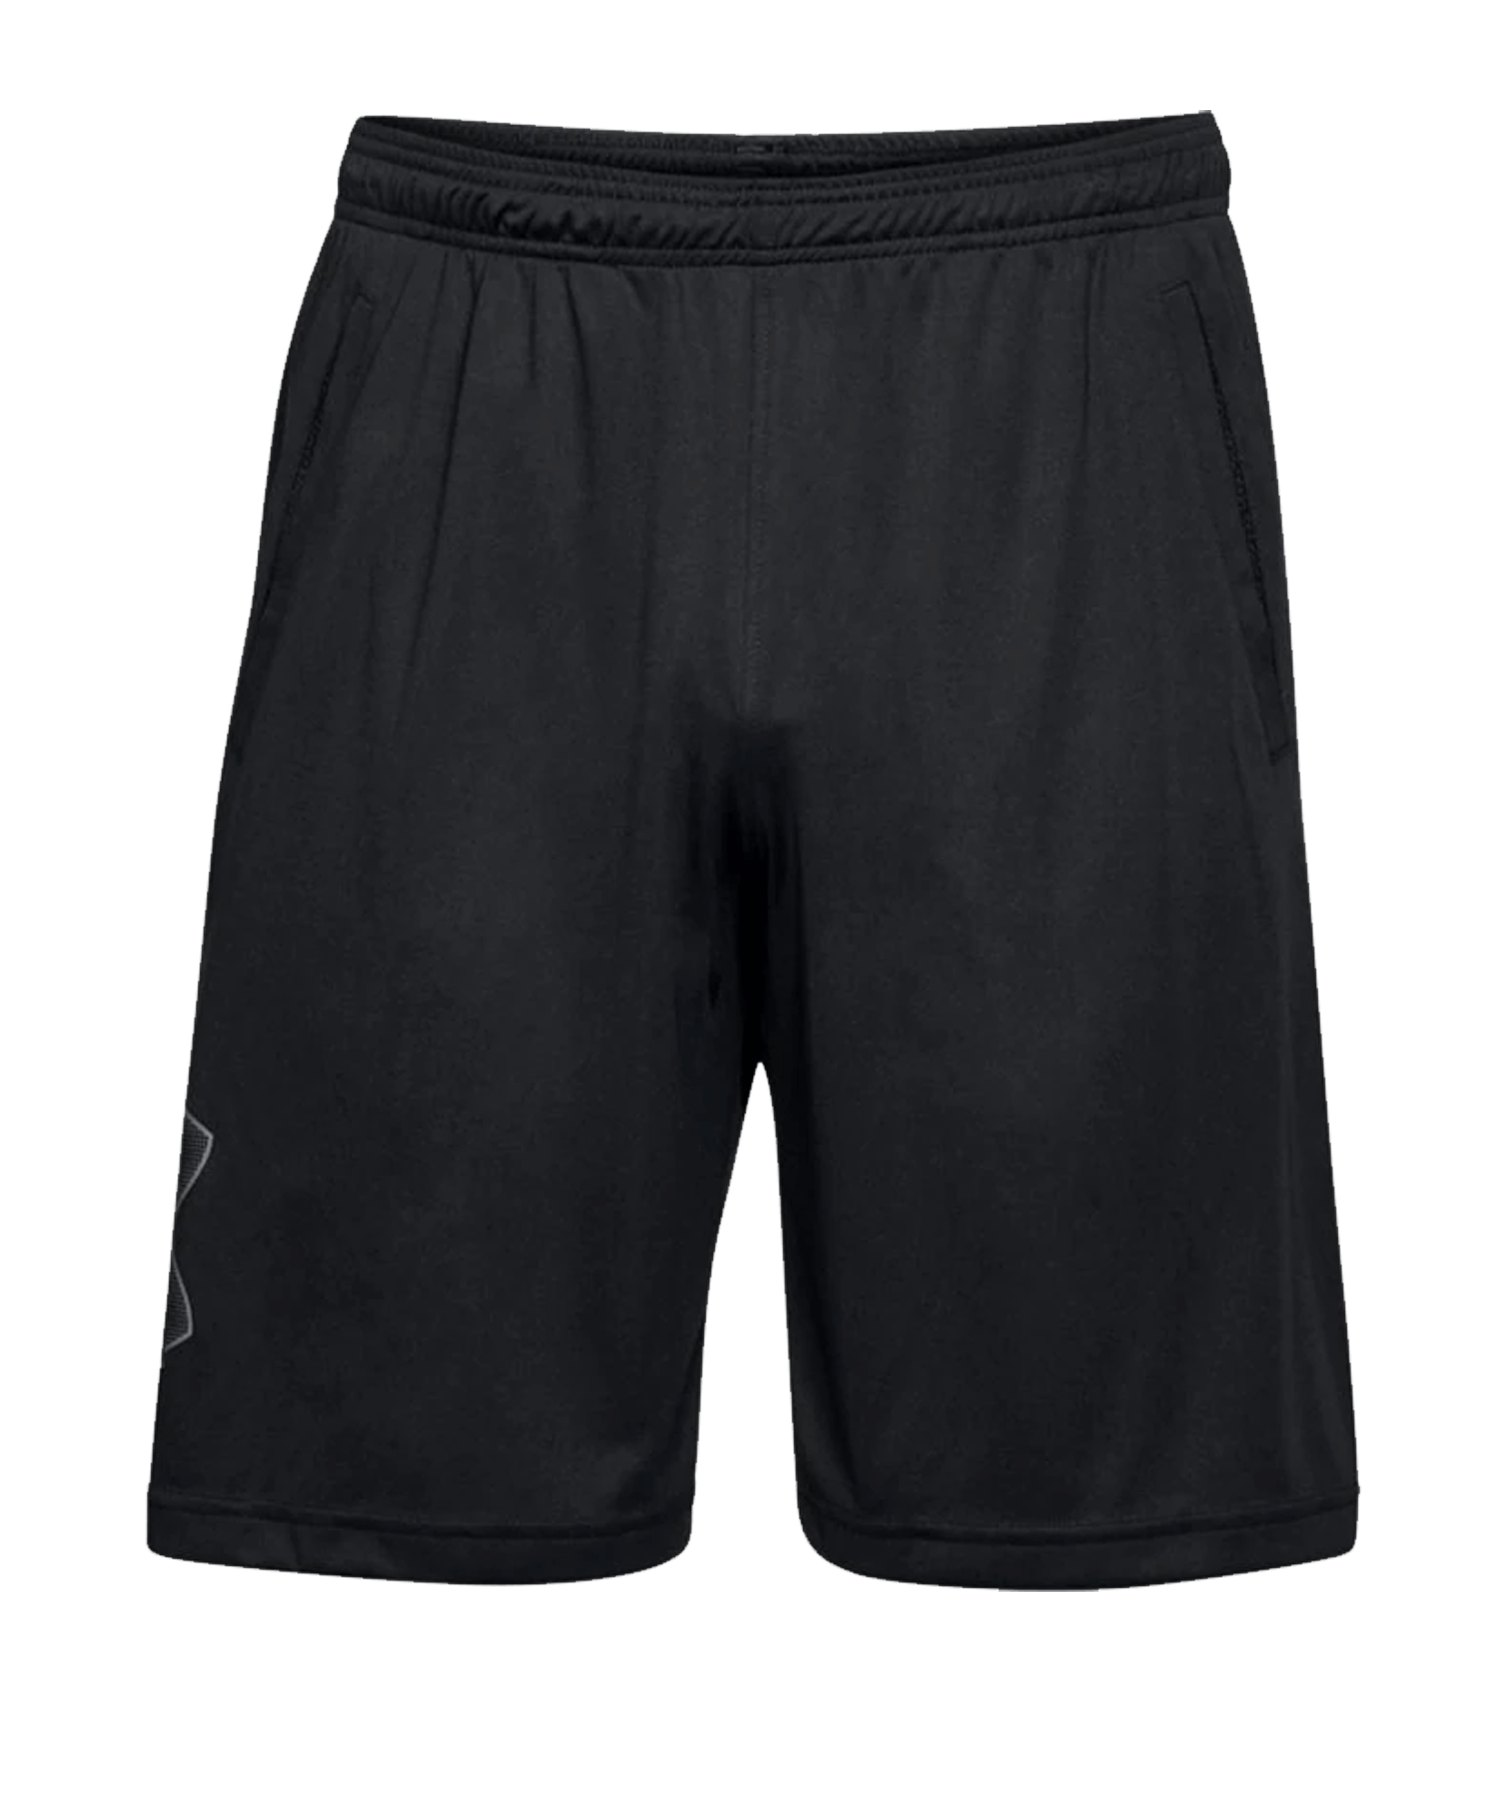 Under Armour Tech Graphic Short kurze Hose F001 - schwarz